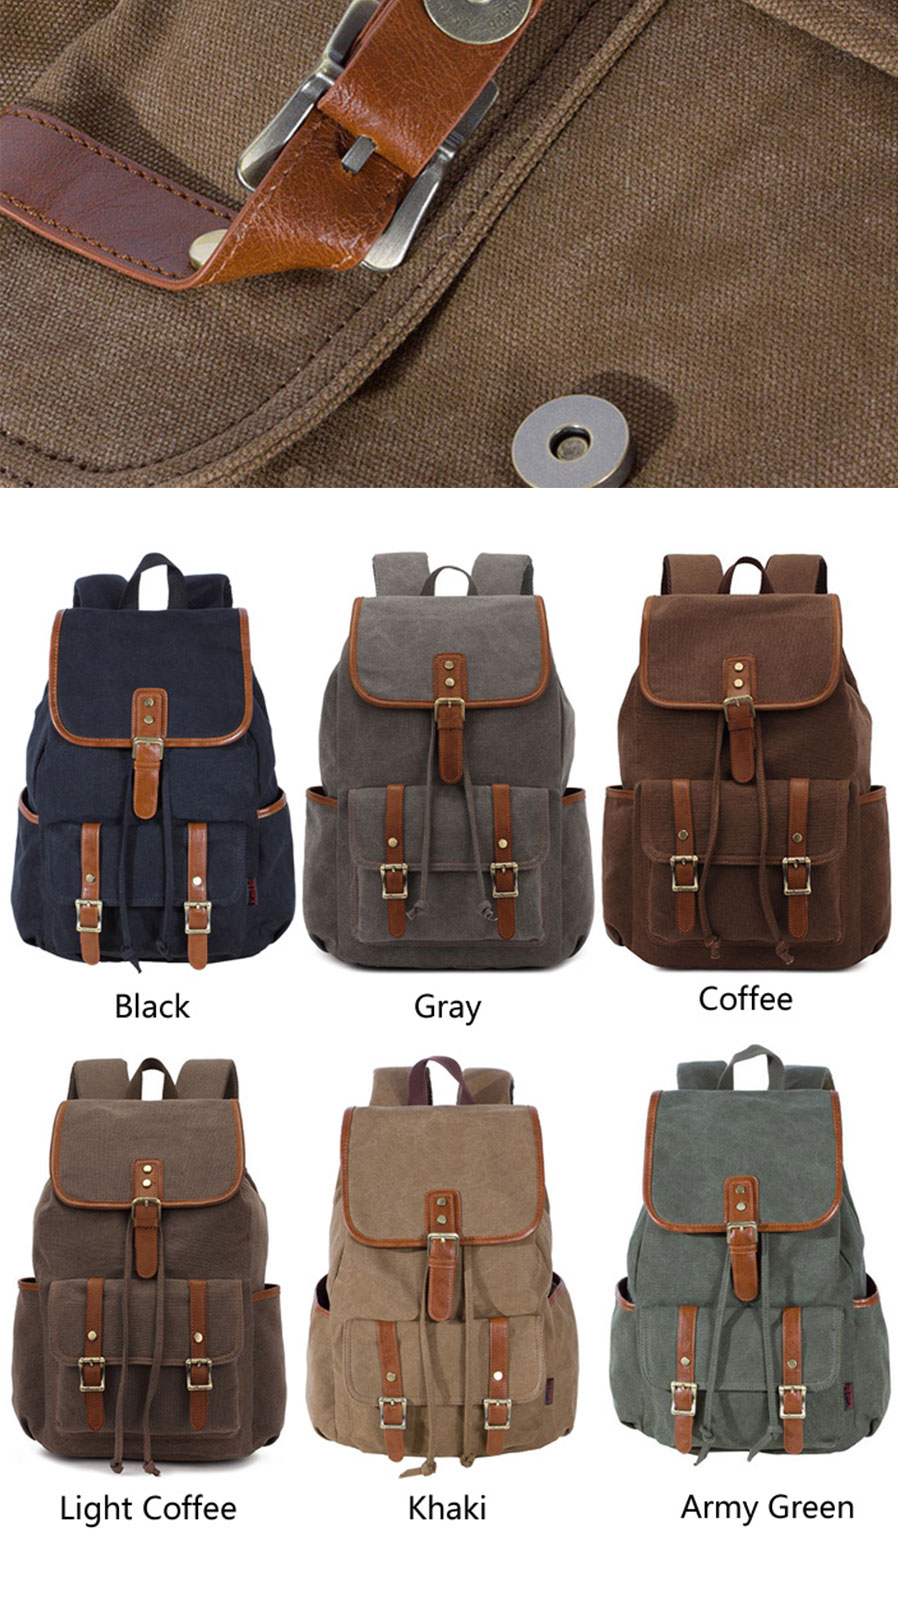 24l Army Bags - sku_449928_6_Simple 24l Army Bags - sku_449928_6  Collection_959317.jpg